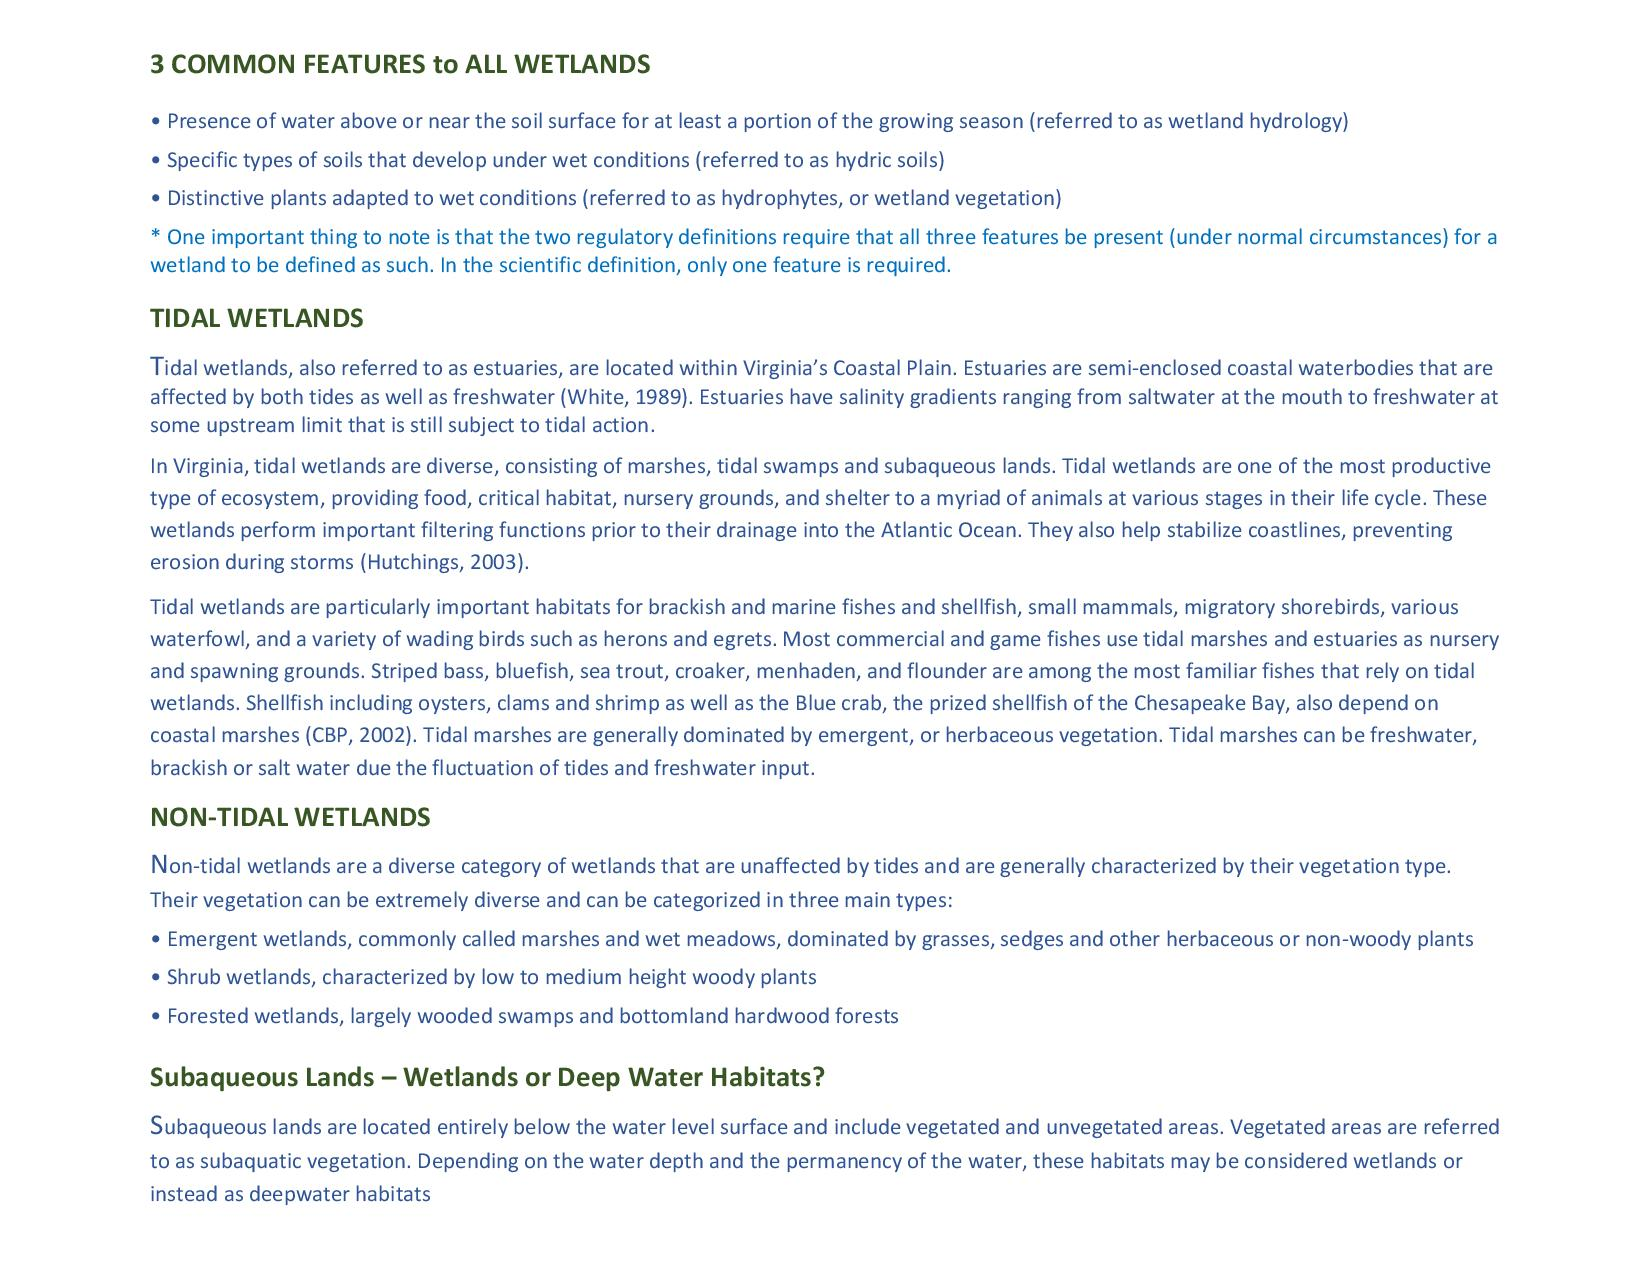 Tidal and Non-Tidal Wetlands-page-001.jpg